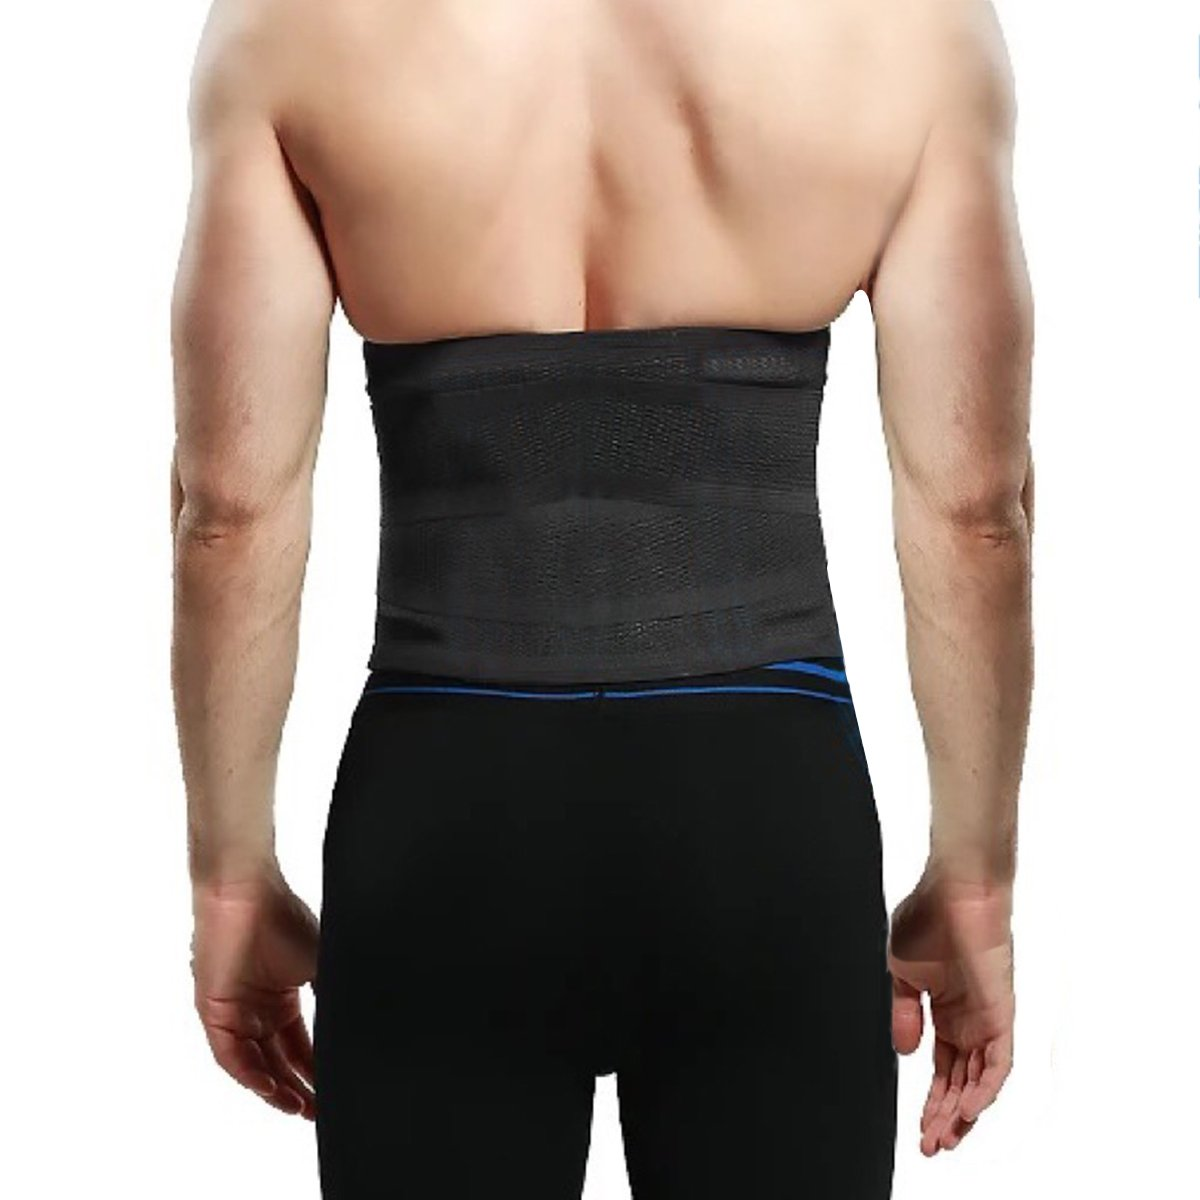 be0a2d980c555 Haseil Men s Slimming Waist Trainer Lower Back Gym Burn Fat Trimmmer Body  Shaper at Amazon Men s Clothing store